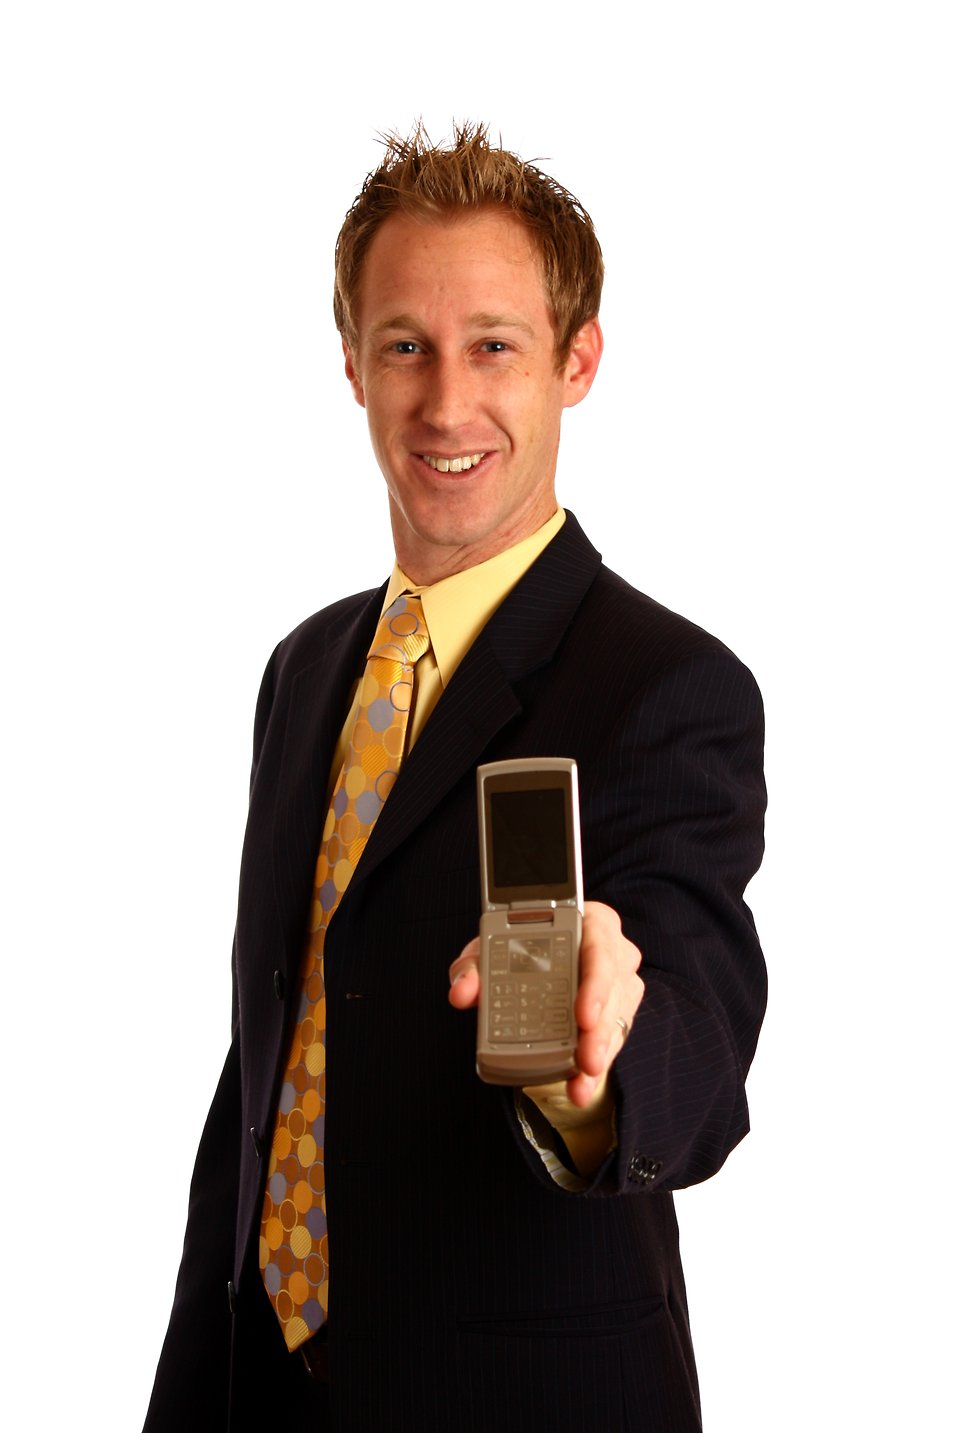 A young businessman in a suit holding a cell phone : Free Stock Photo